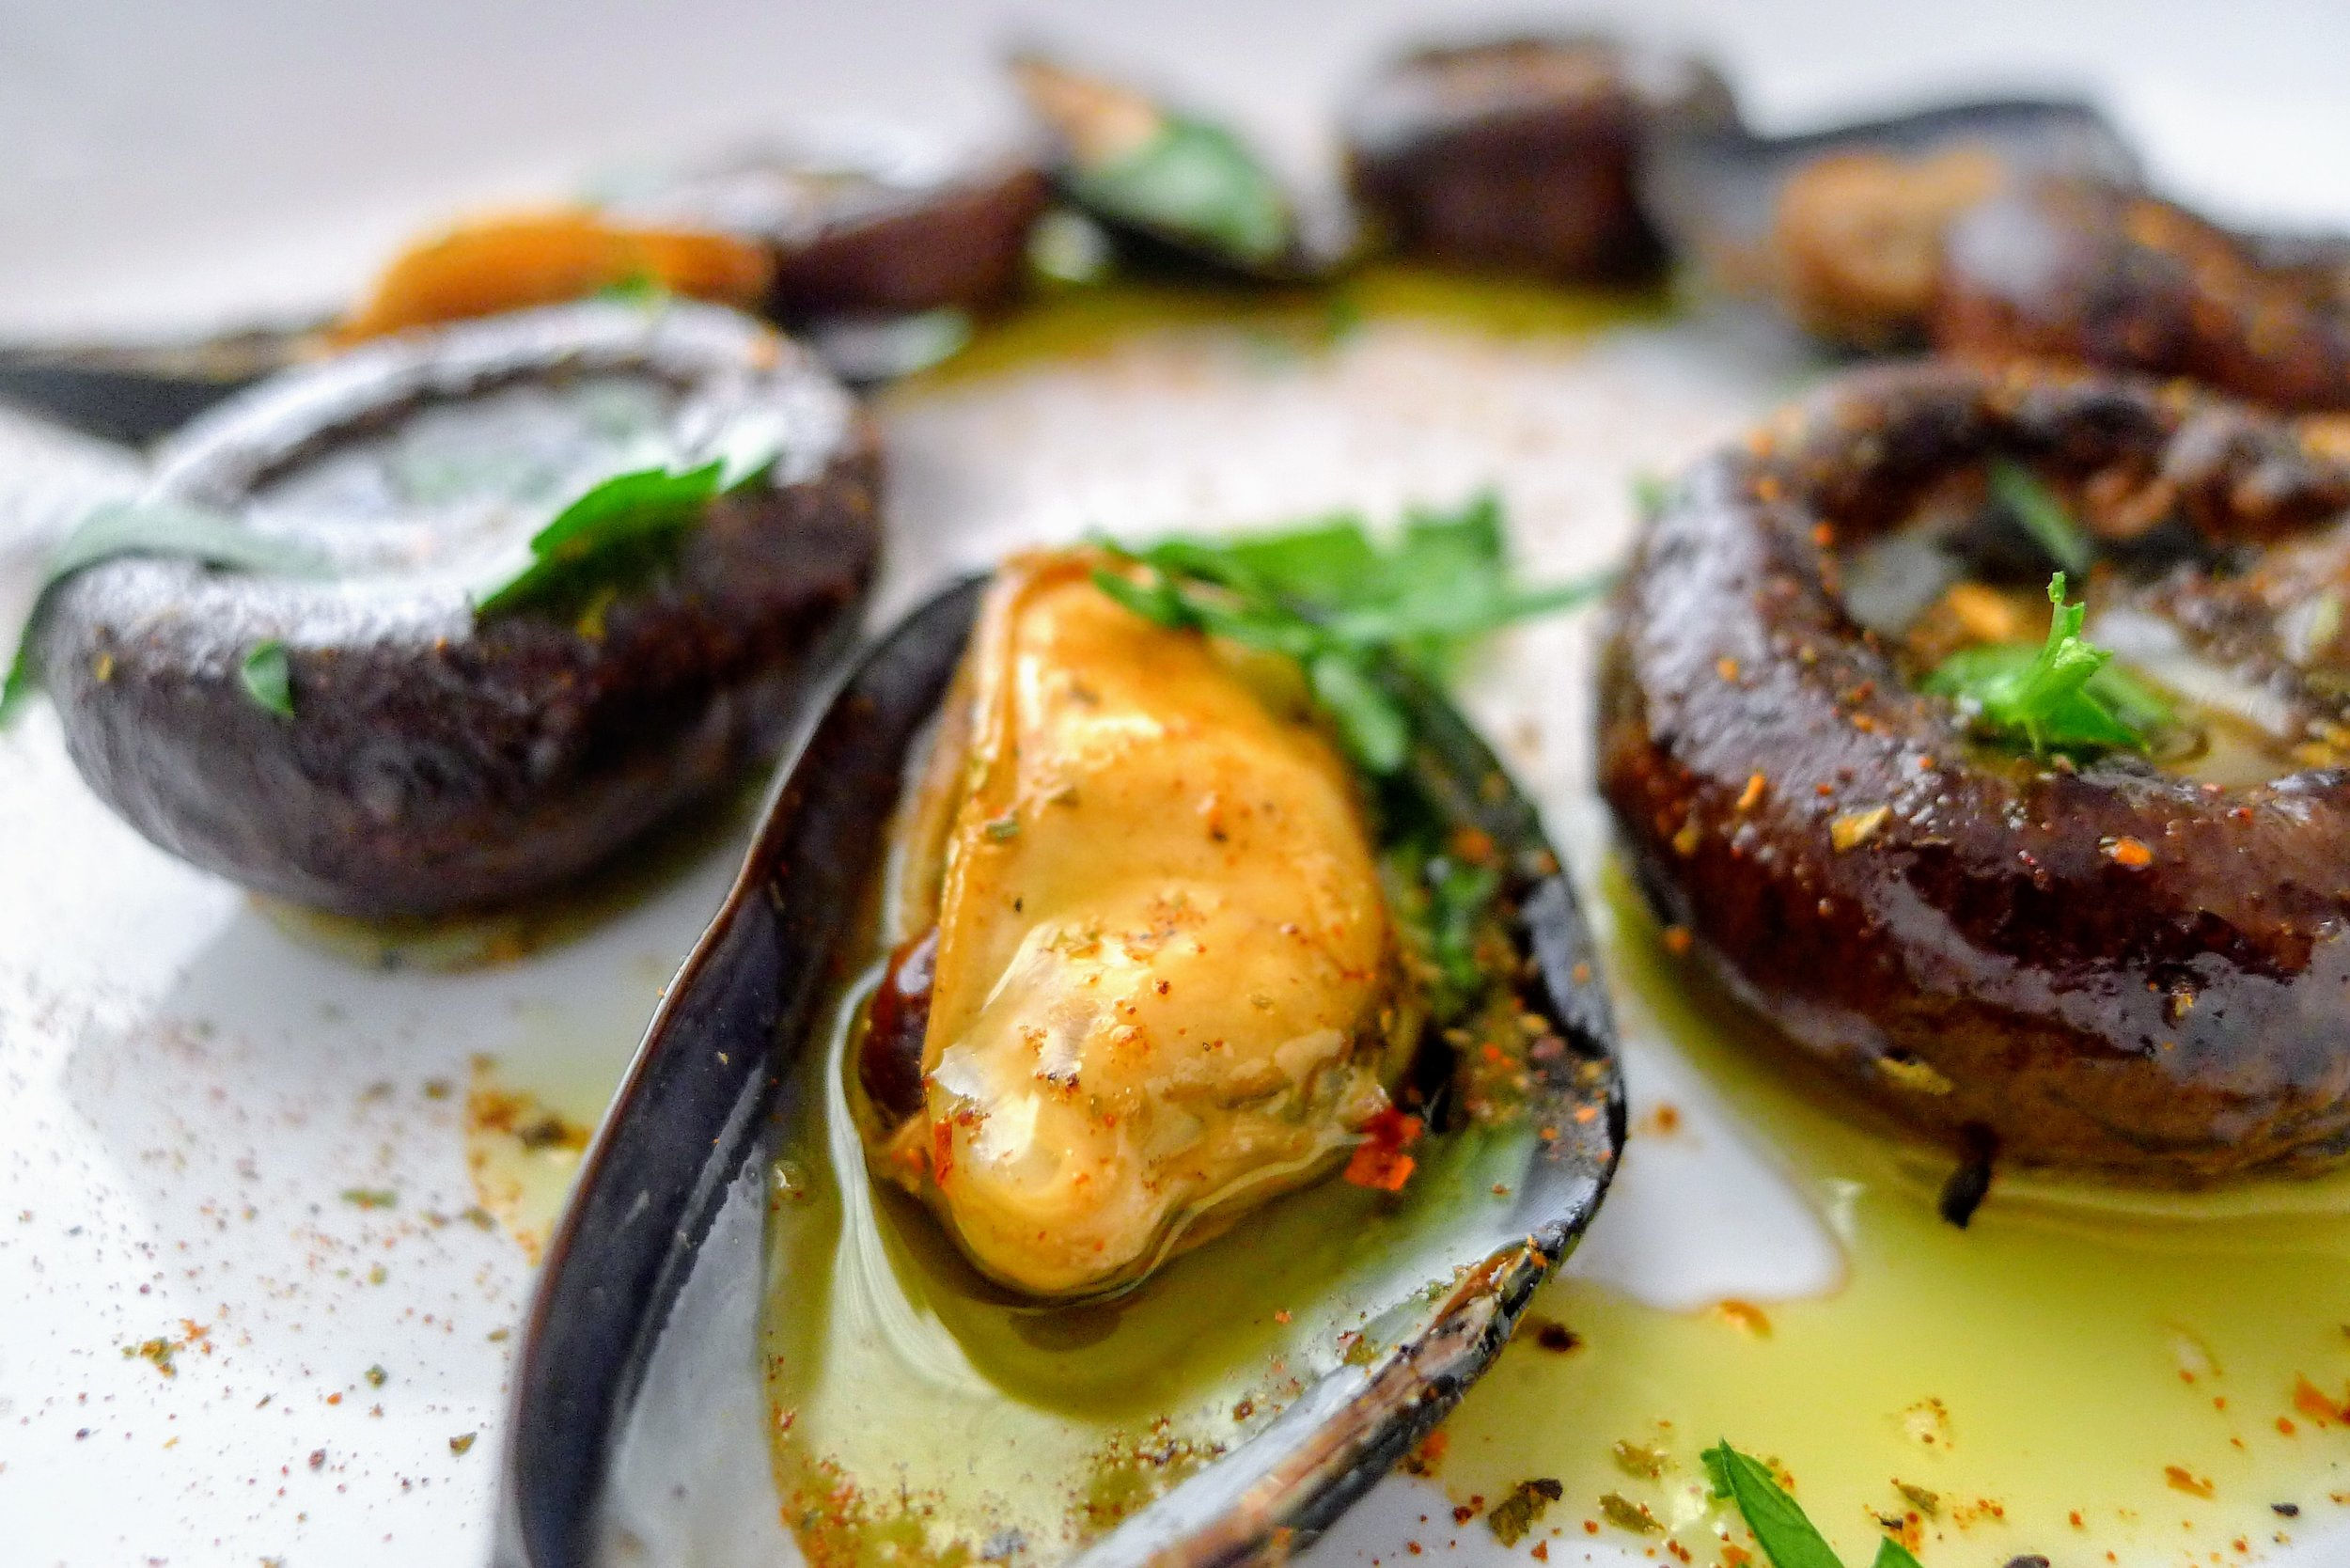 Steamed mussels with EVOO, Pepper, Paprika & Parsley